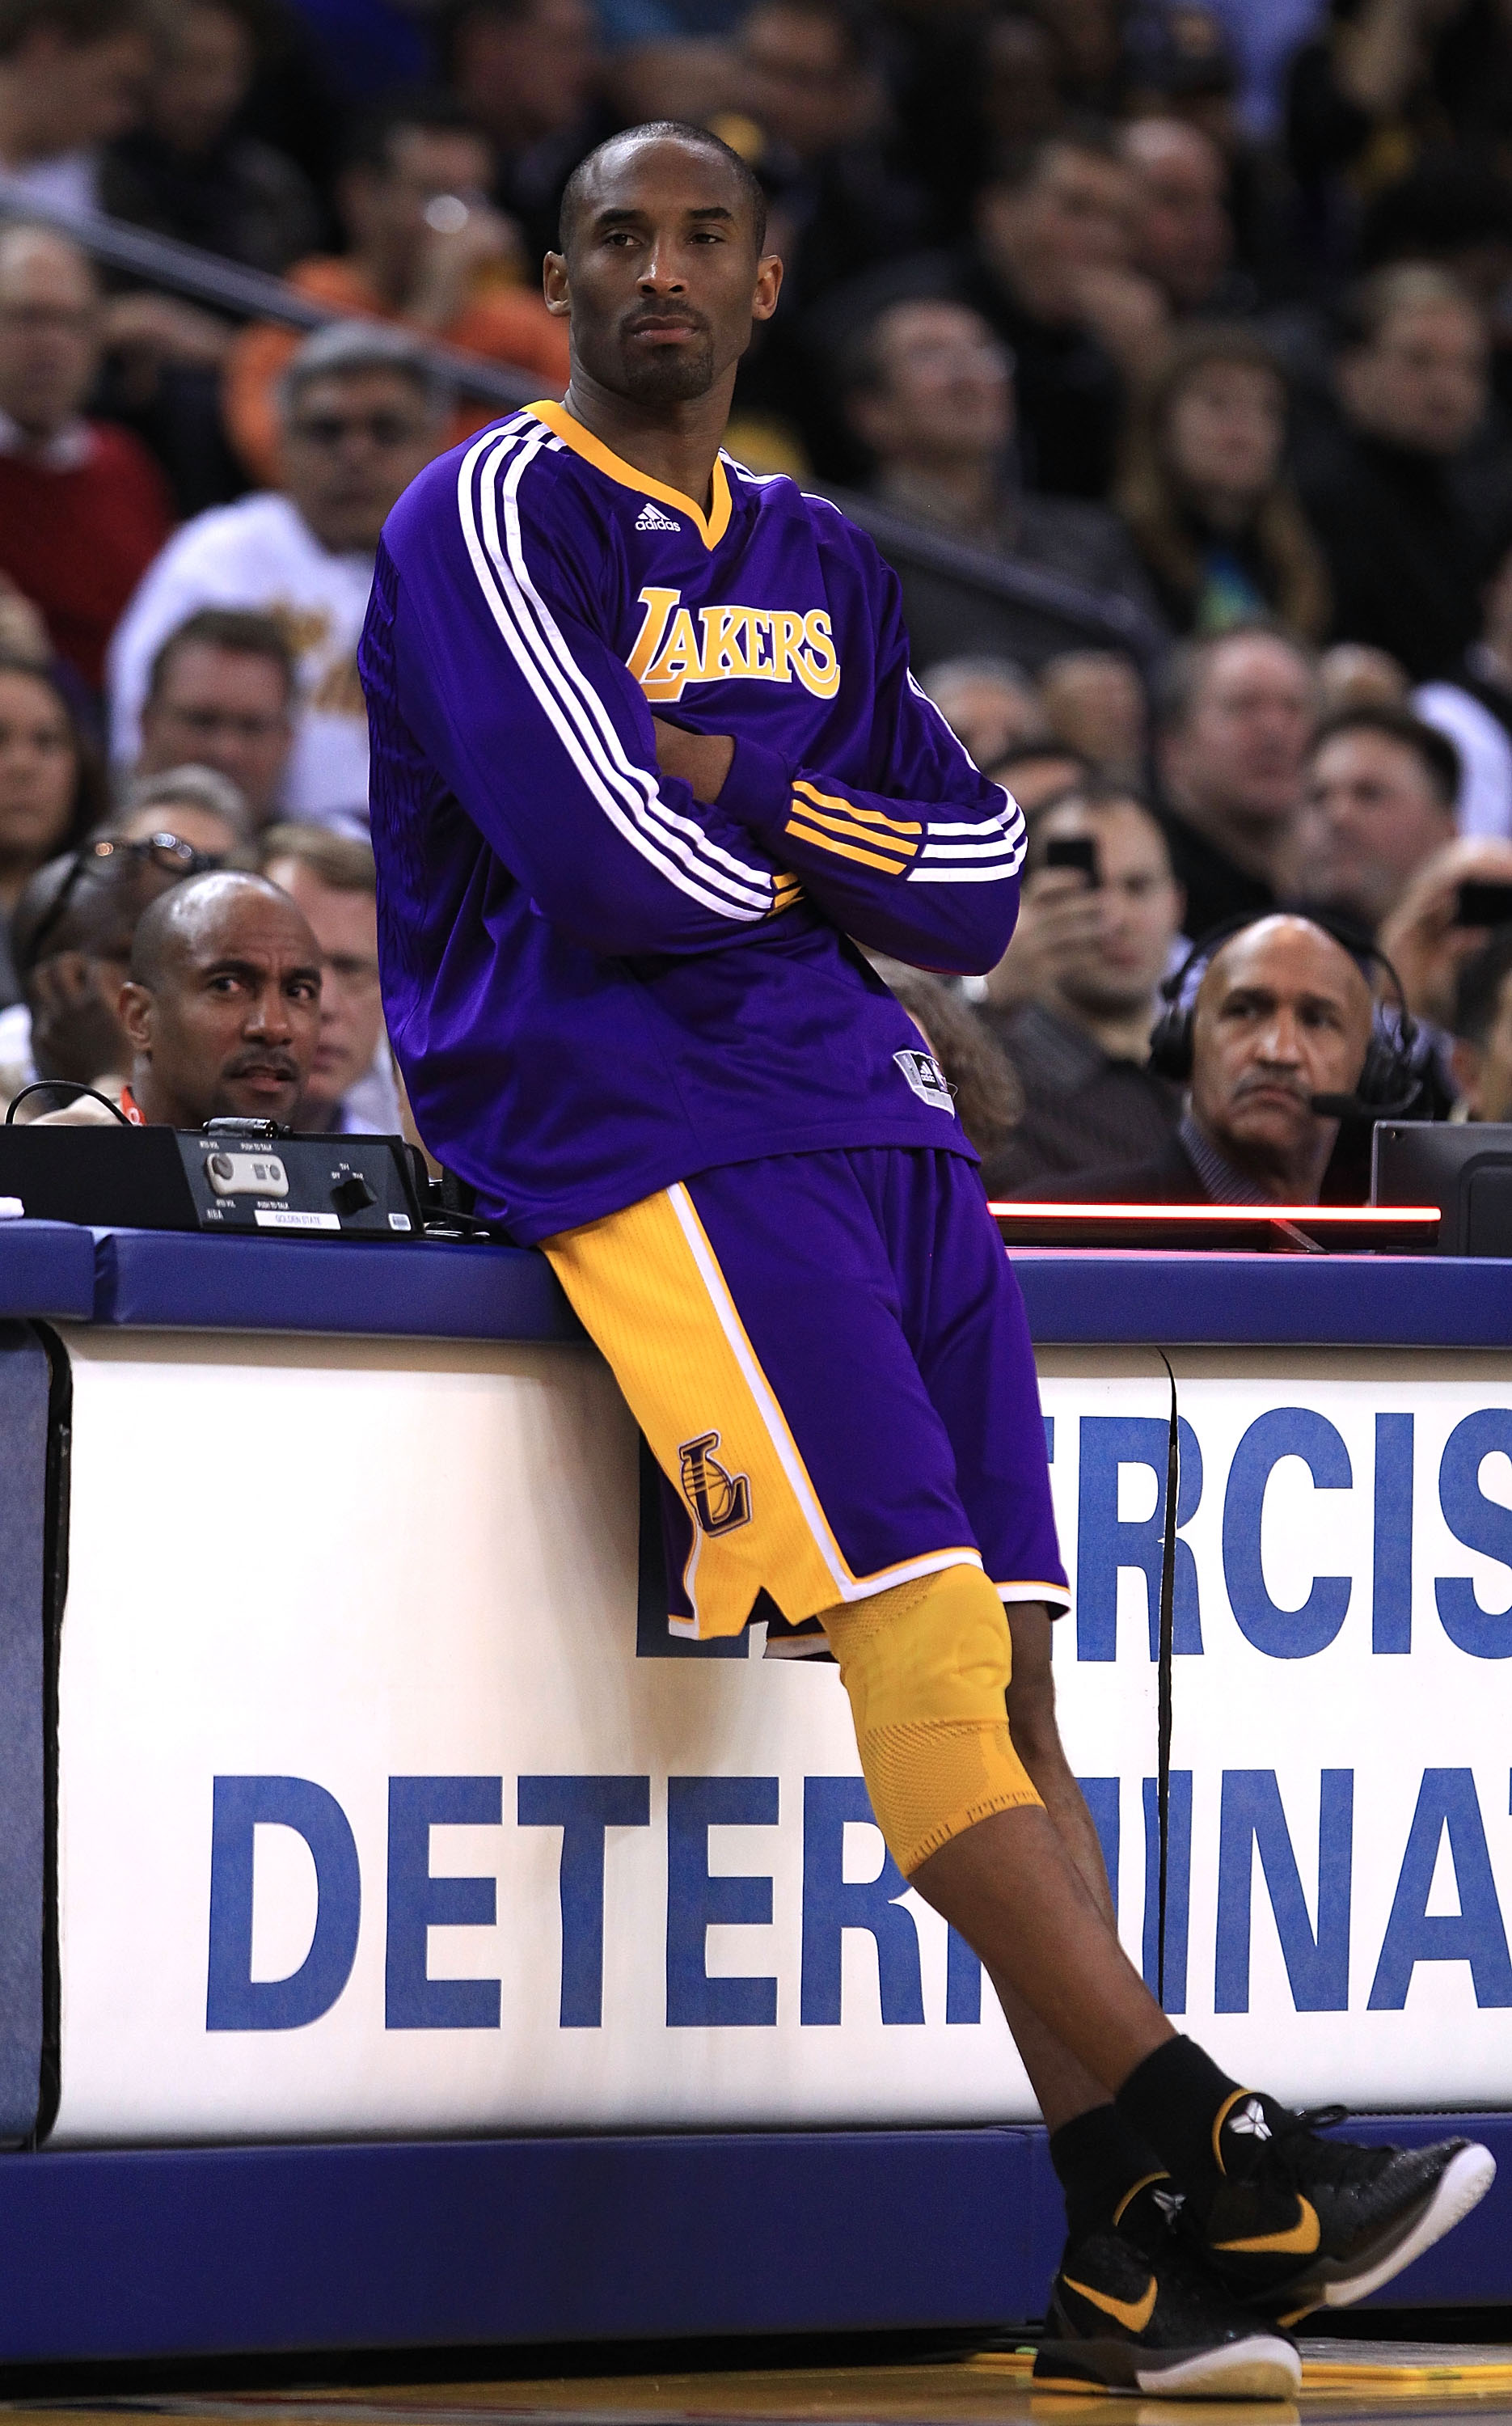 OAKLAND, CA - JANUARY 12:  Kobe Bryant #24 of the Los Angeles Lakers waits to come in to the game during their game against the Golden State Warriors at Oracle Arena on January 12, 2011 in Oakland, California. NOTE TO USER: User expressly acknowledges and